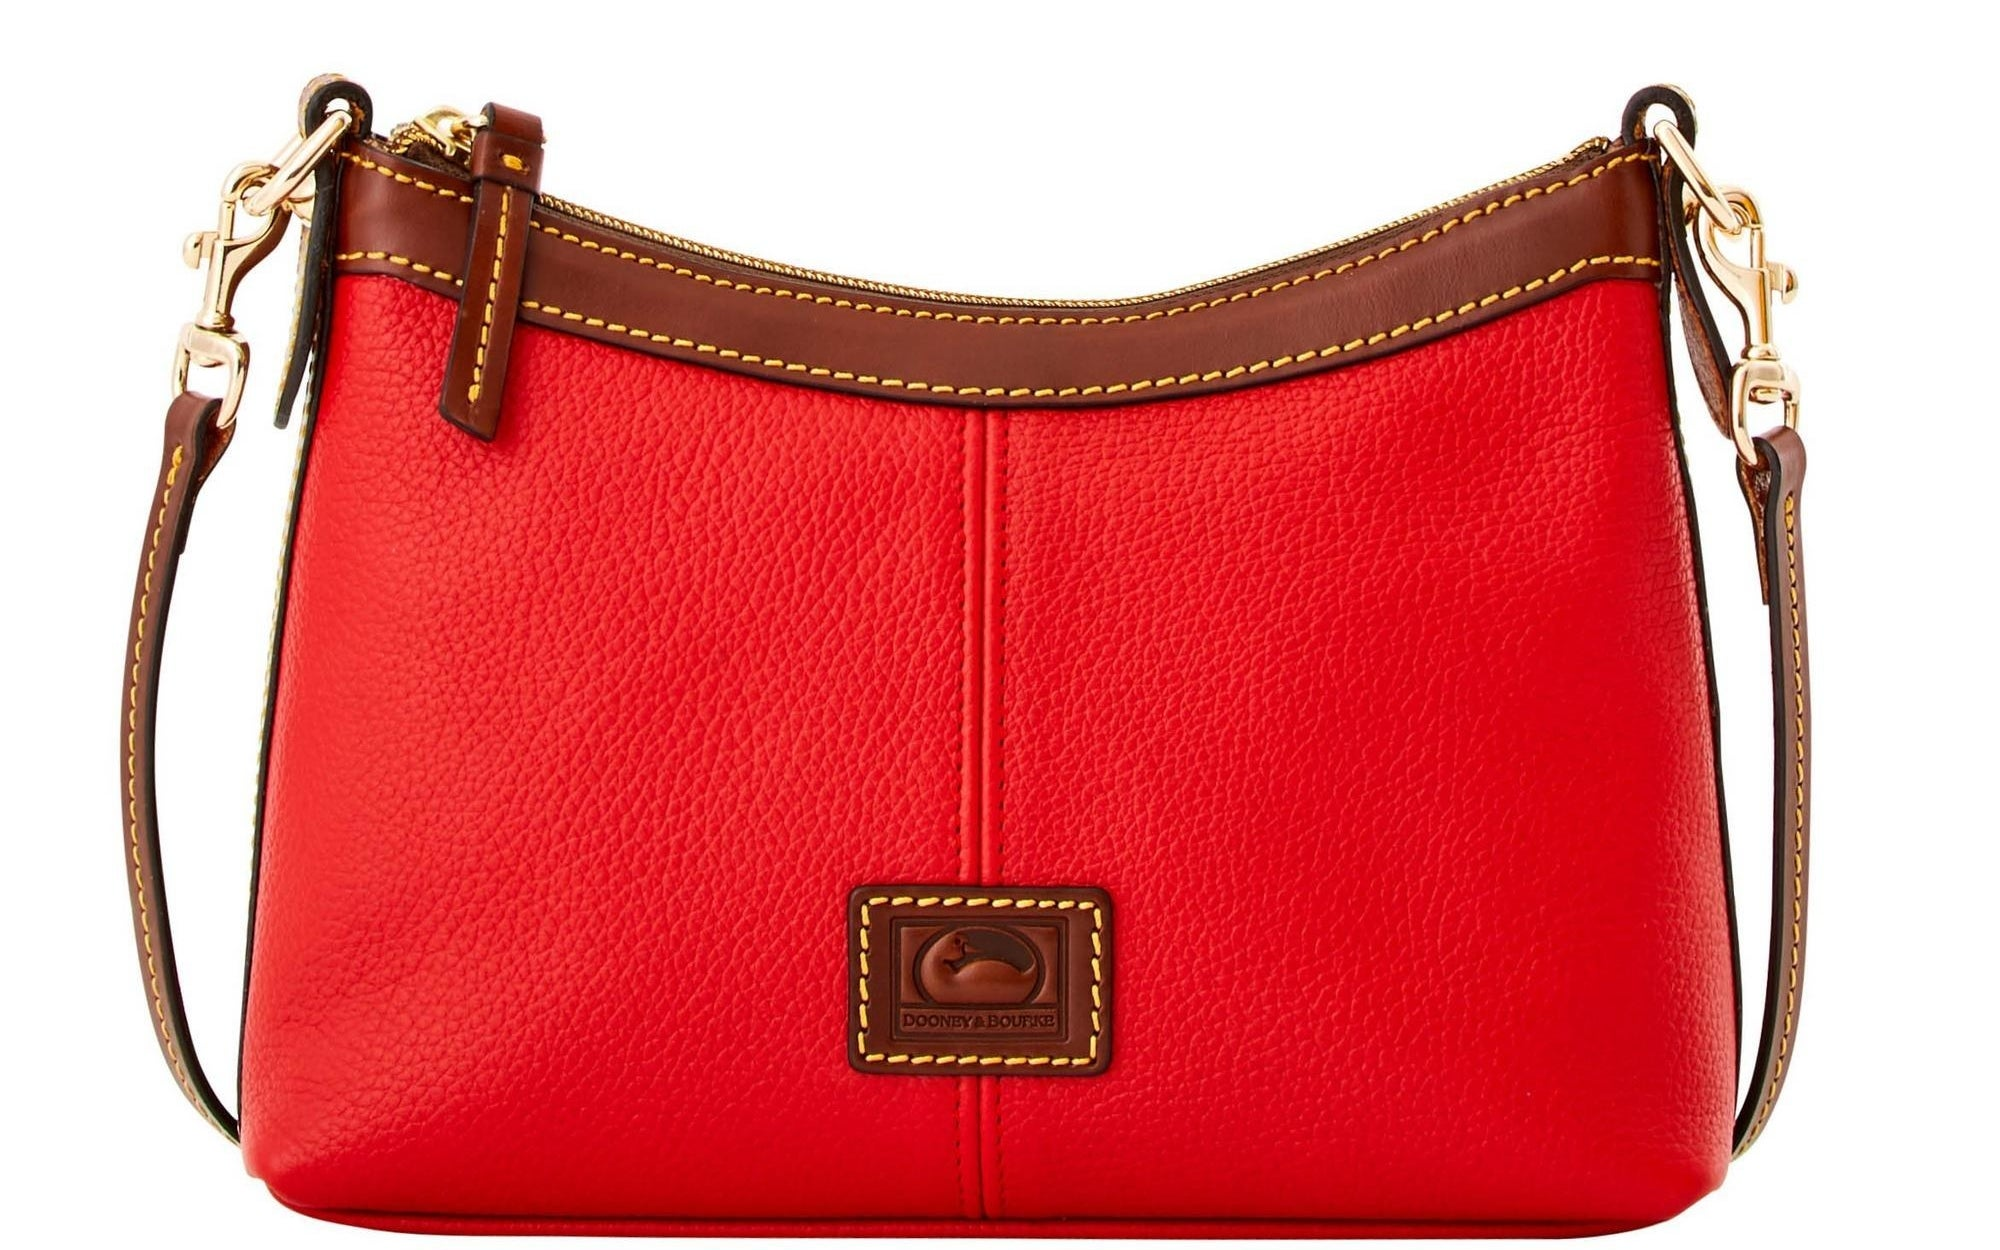 A bright red leather crossbody pouch